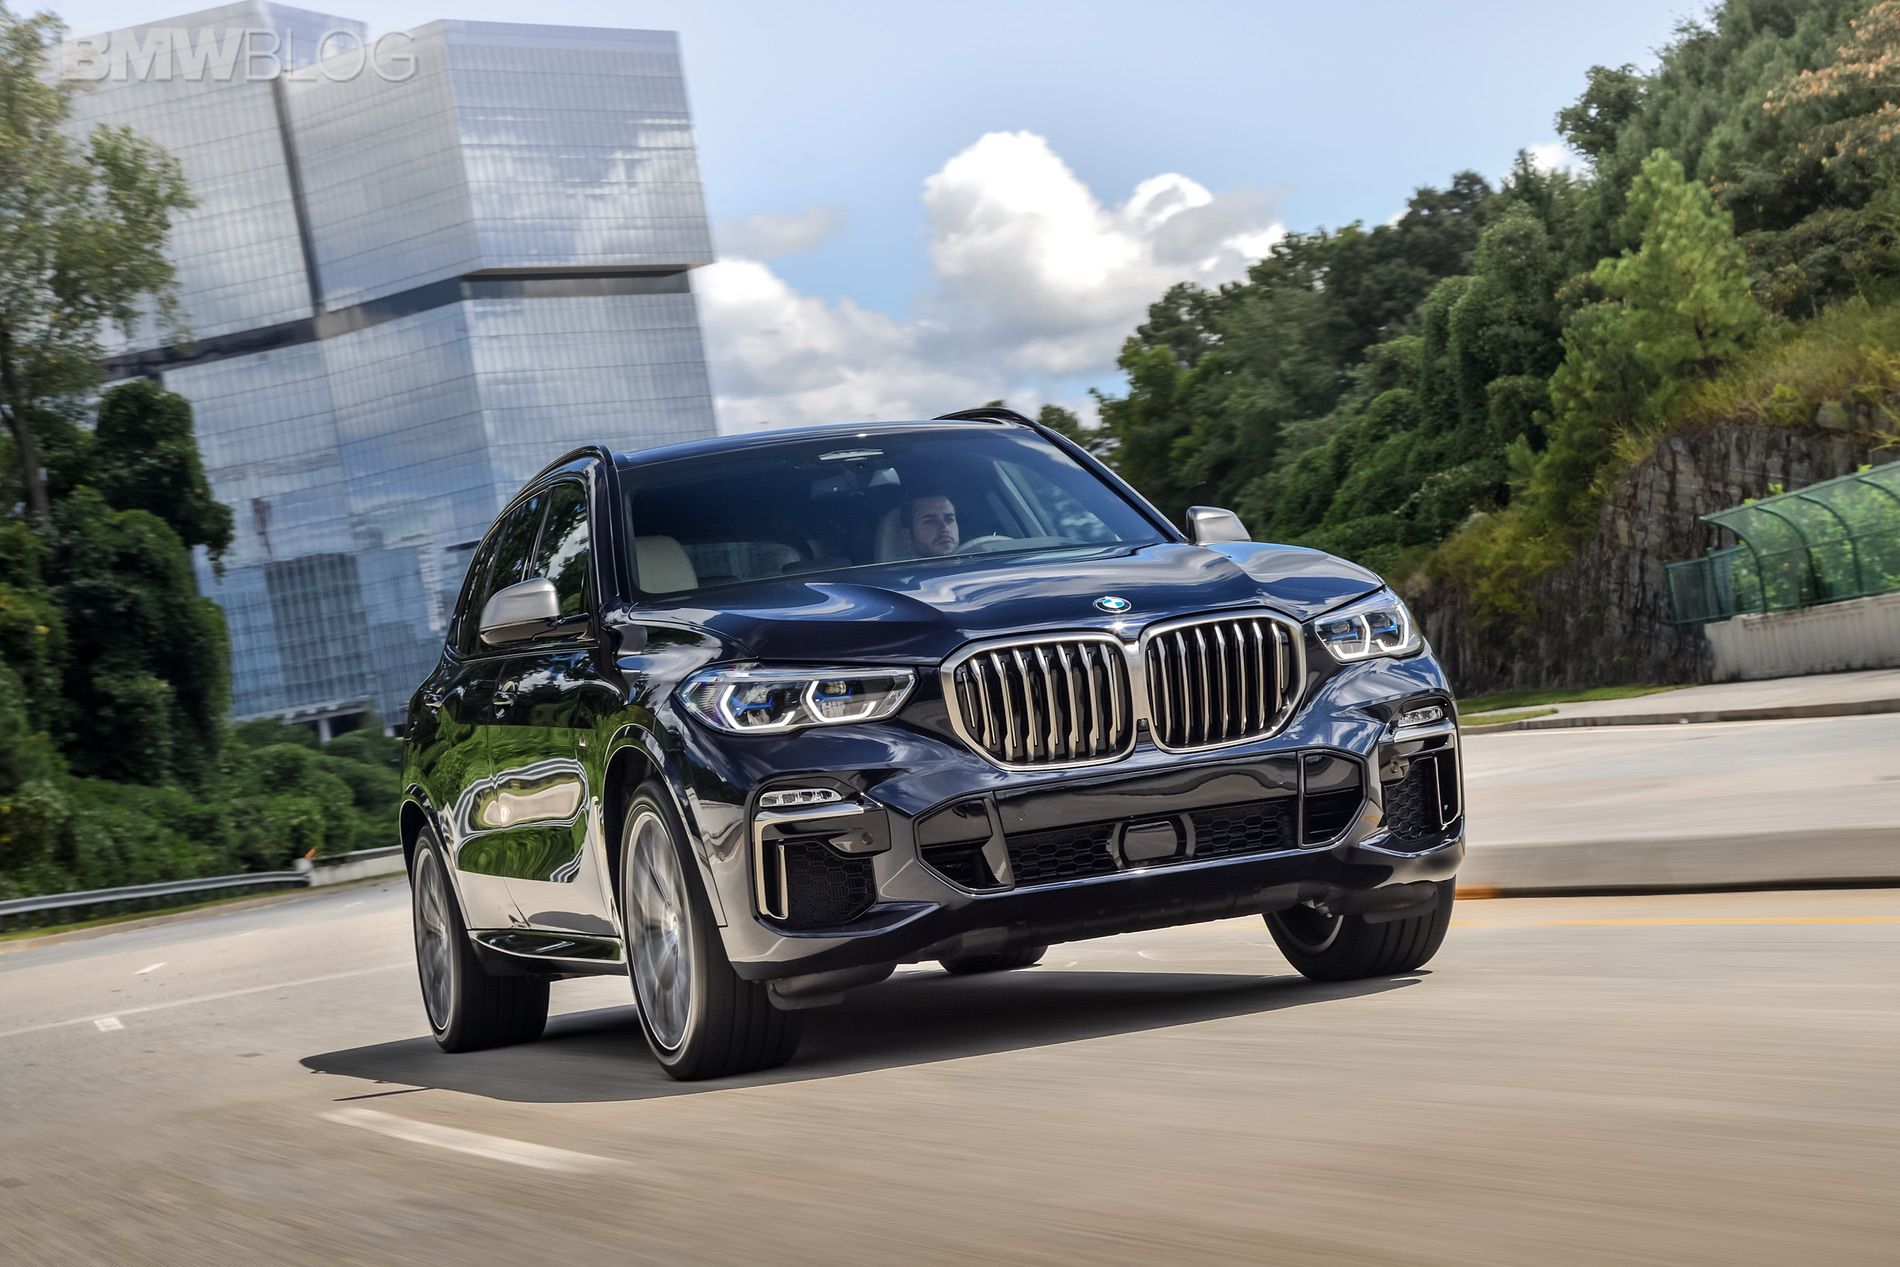 2019 bmw x5 m50d new photo gallery. Black Bedroom Furniture Sets. Home Design Ideas